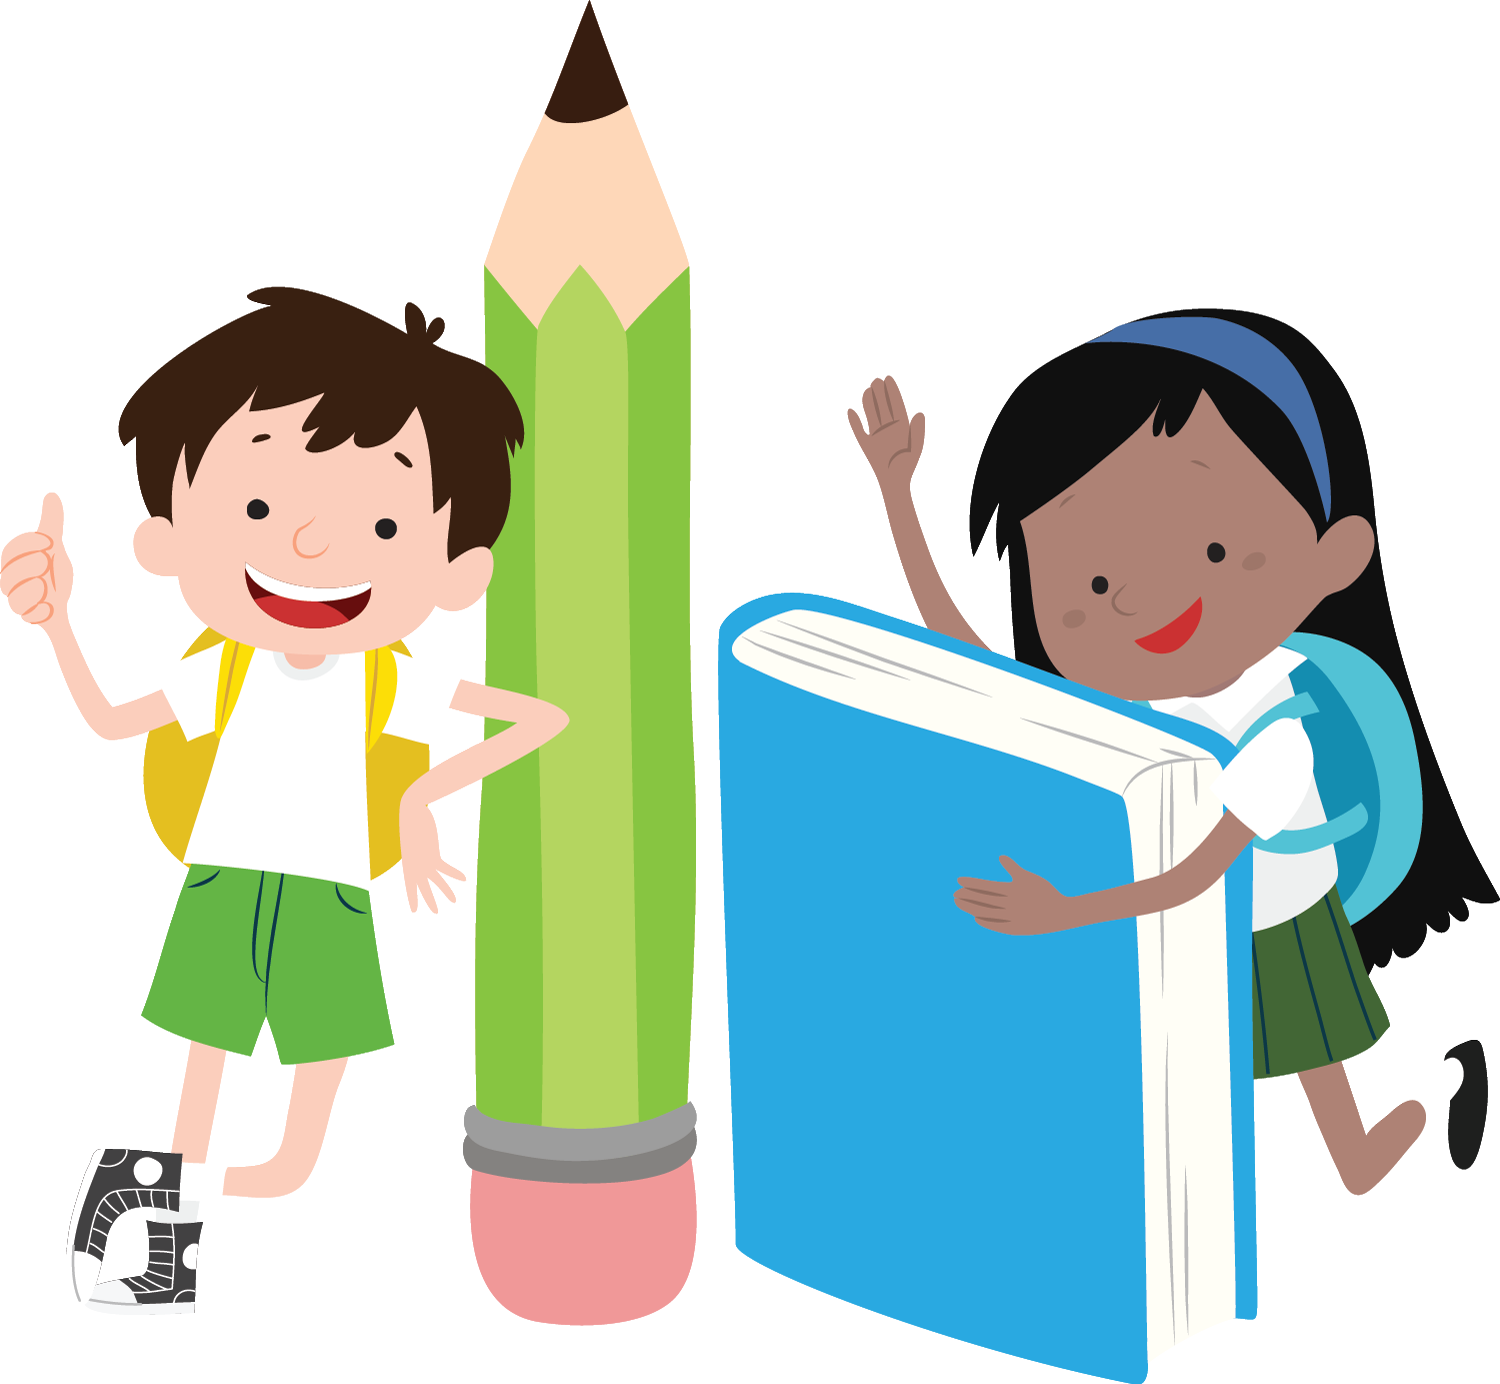 School Supplies - We purchase school supplies for Bay Area schools so they can be used for educational activities and to support our incredible teachers and future young leaders. Past donations have included backpacks, binders, art supplies, office supplies, and educational games.